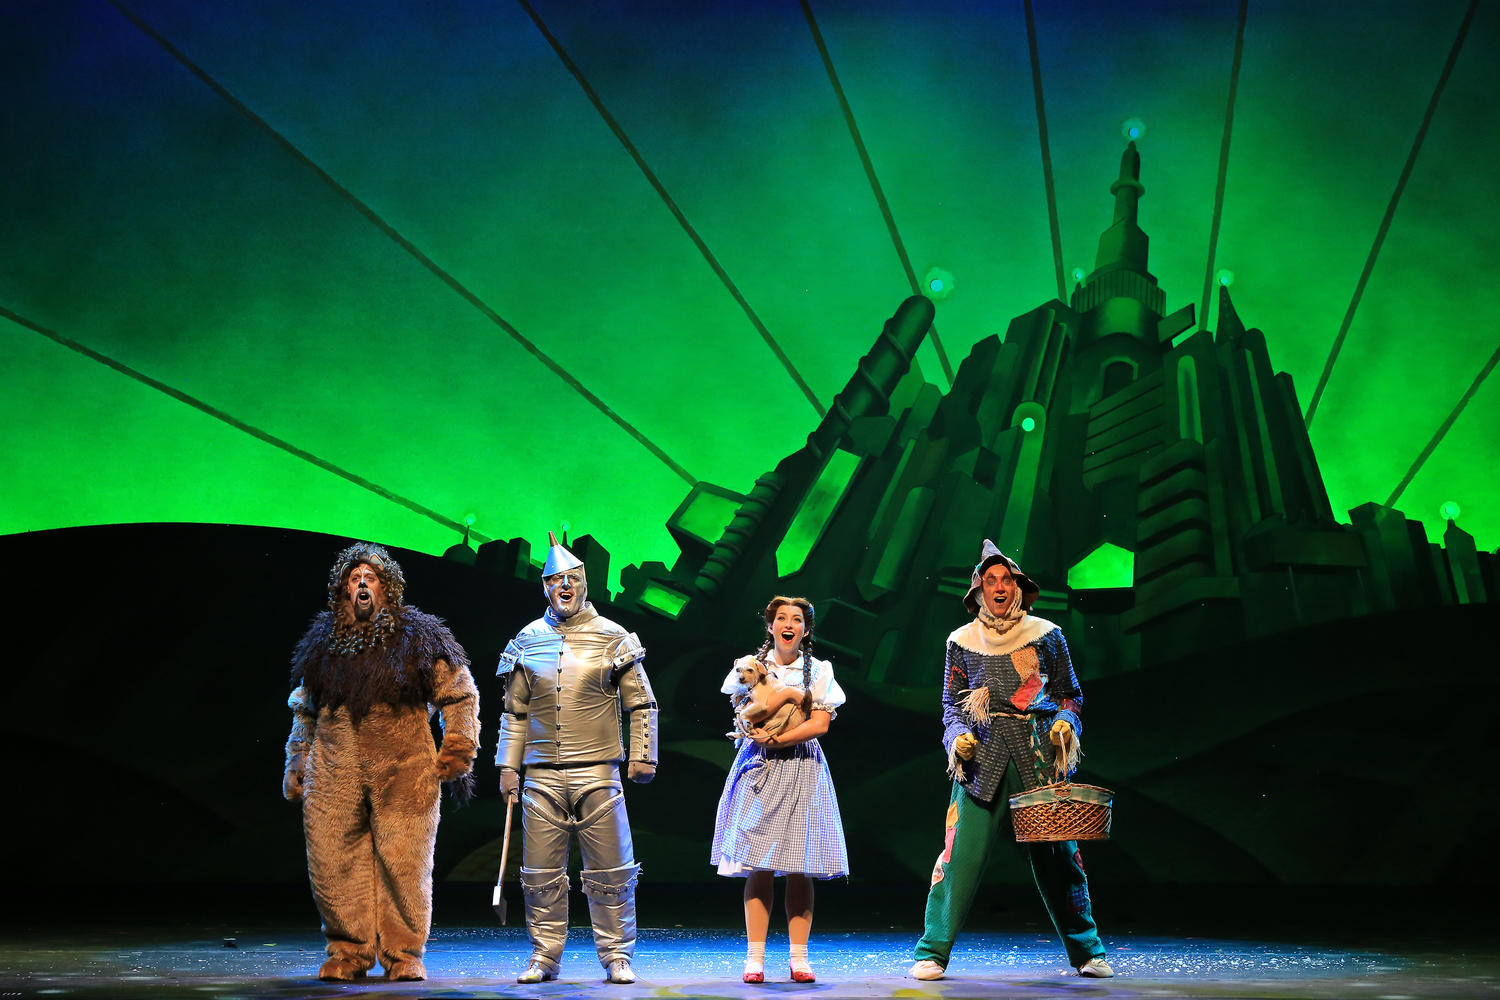 BWW Review: THE WIZARD OF OZ at Thrasher-Horne Center